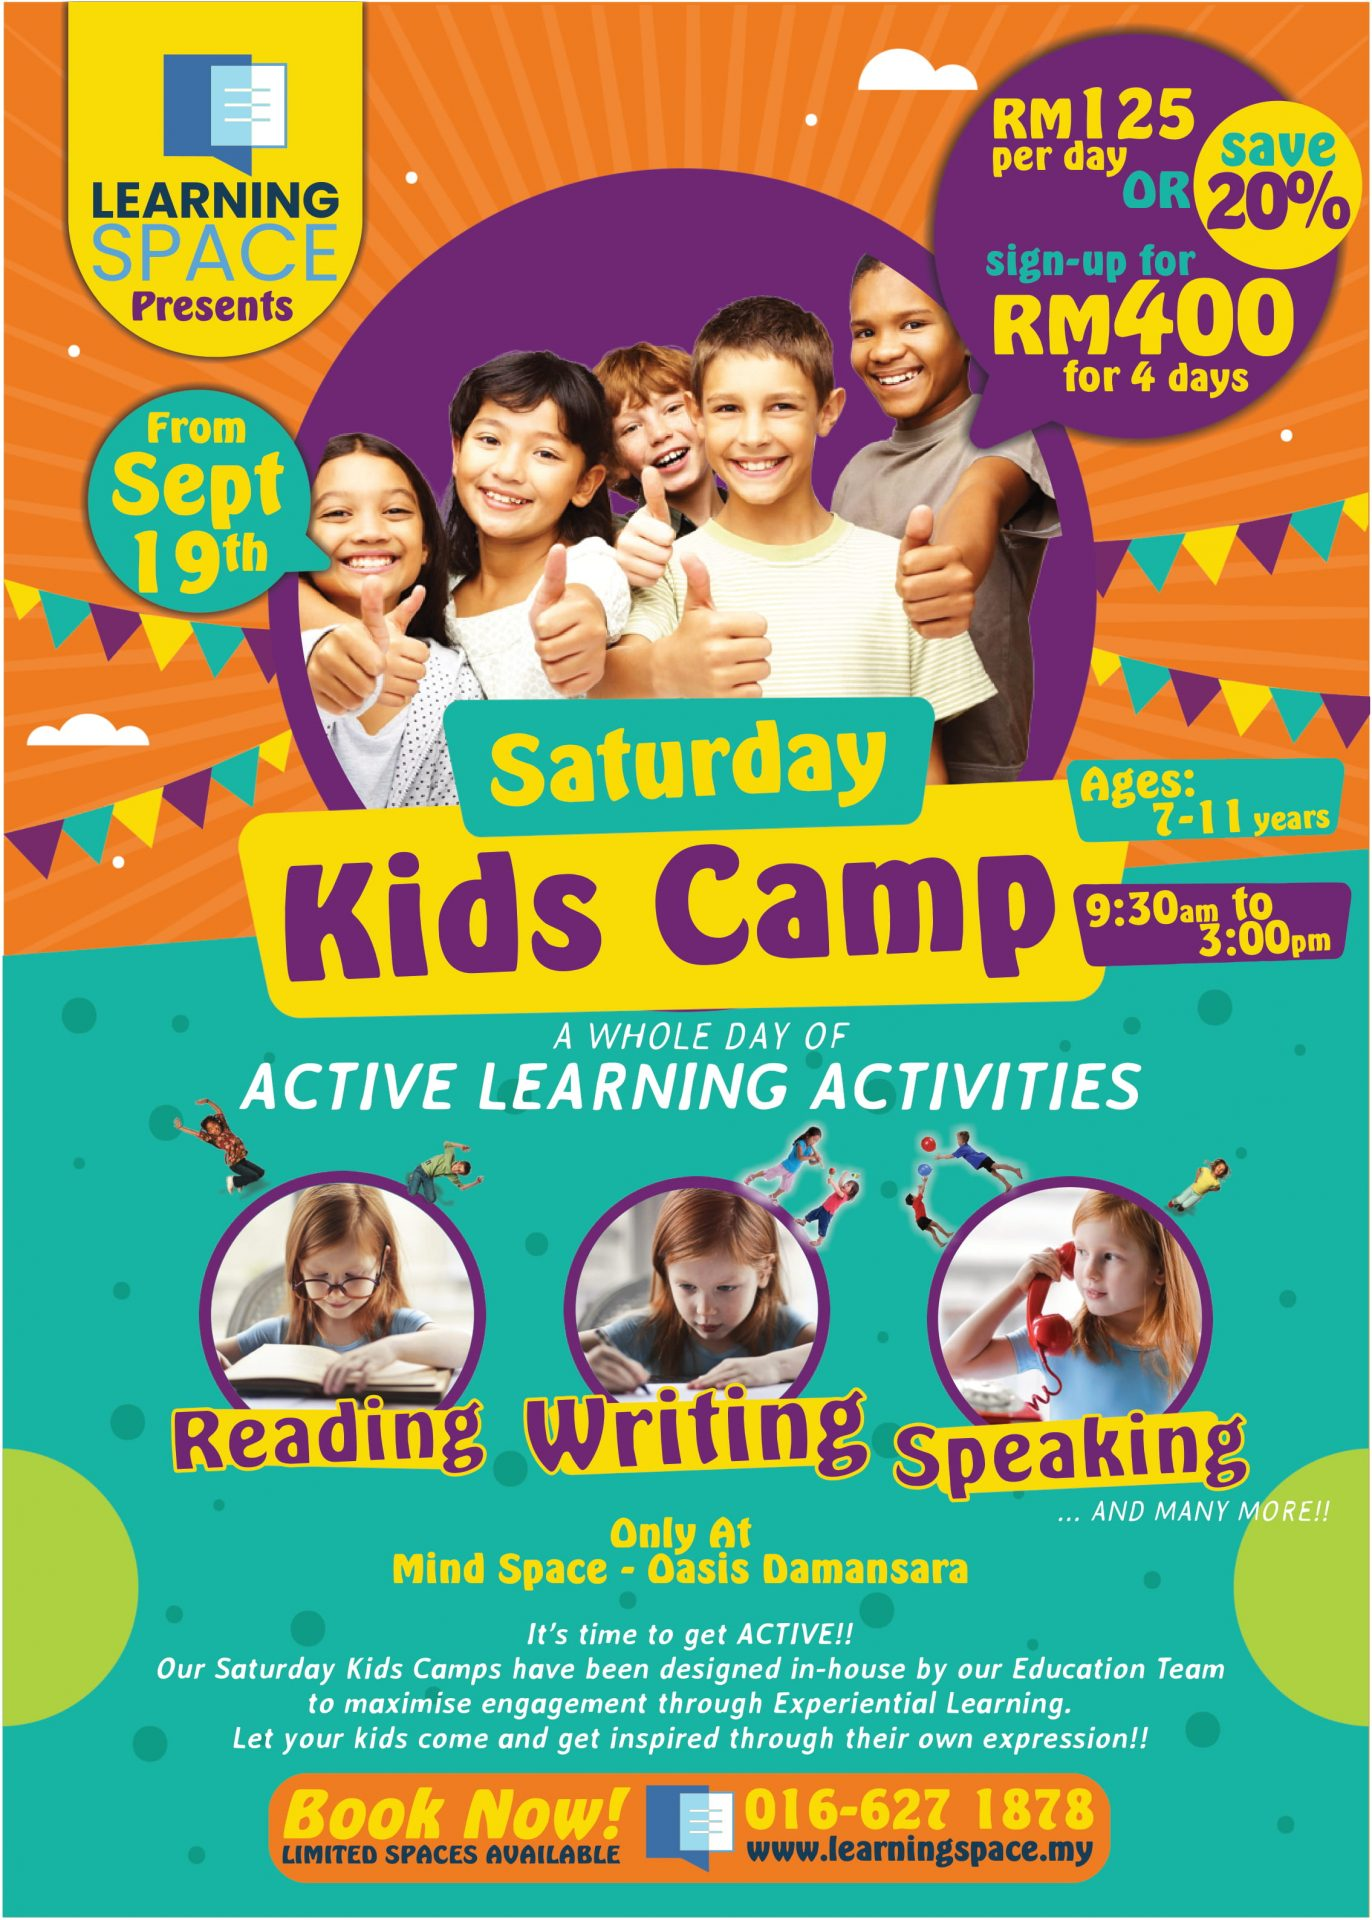 Saturday Kids Camp